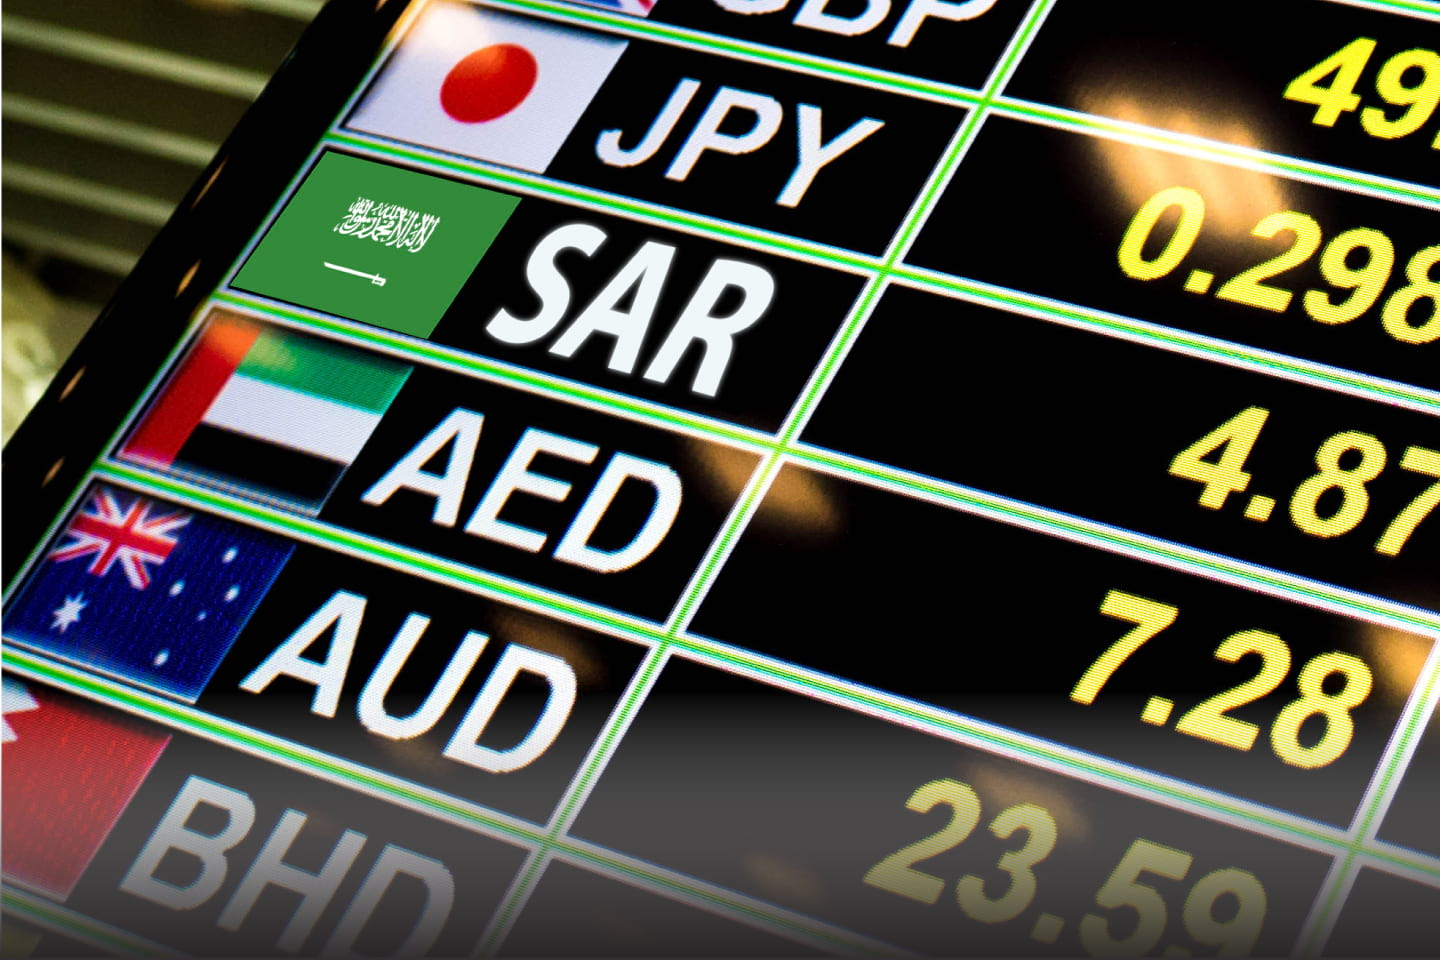 Emirates nbd forex rates